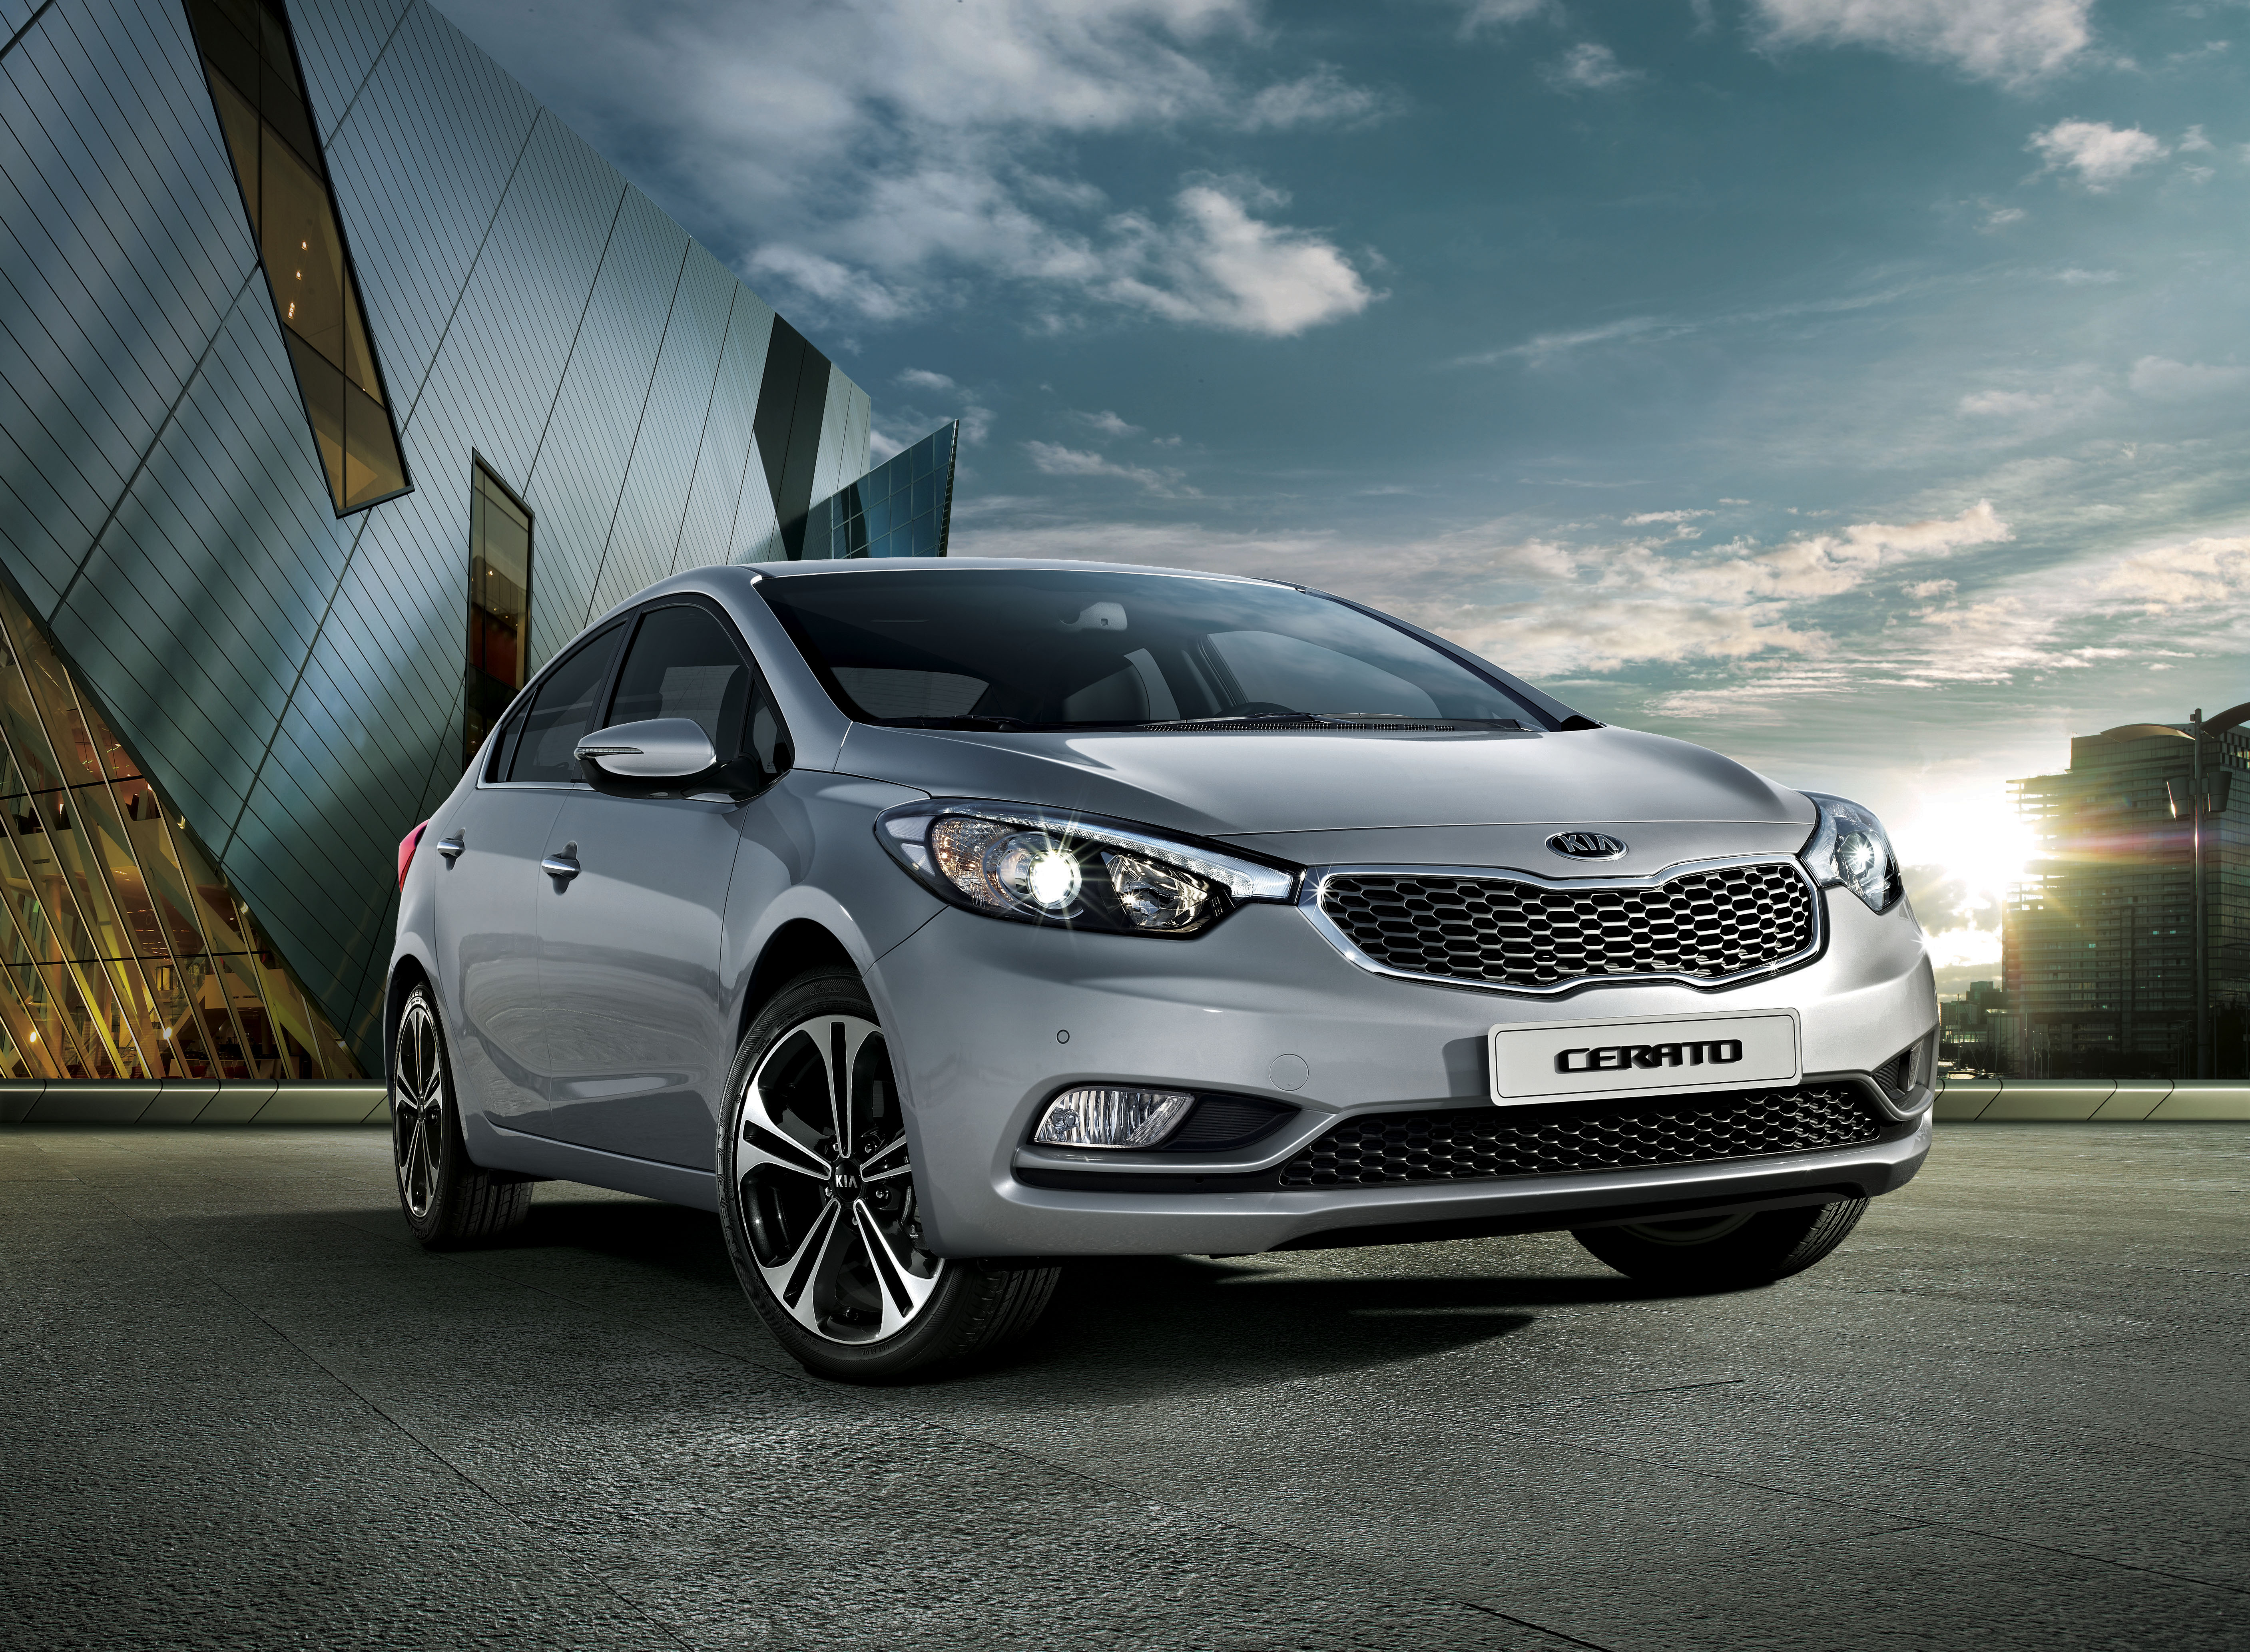 2013 Kia Cerato Launched In Uae Uae Yallamotor